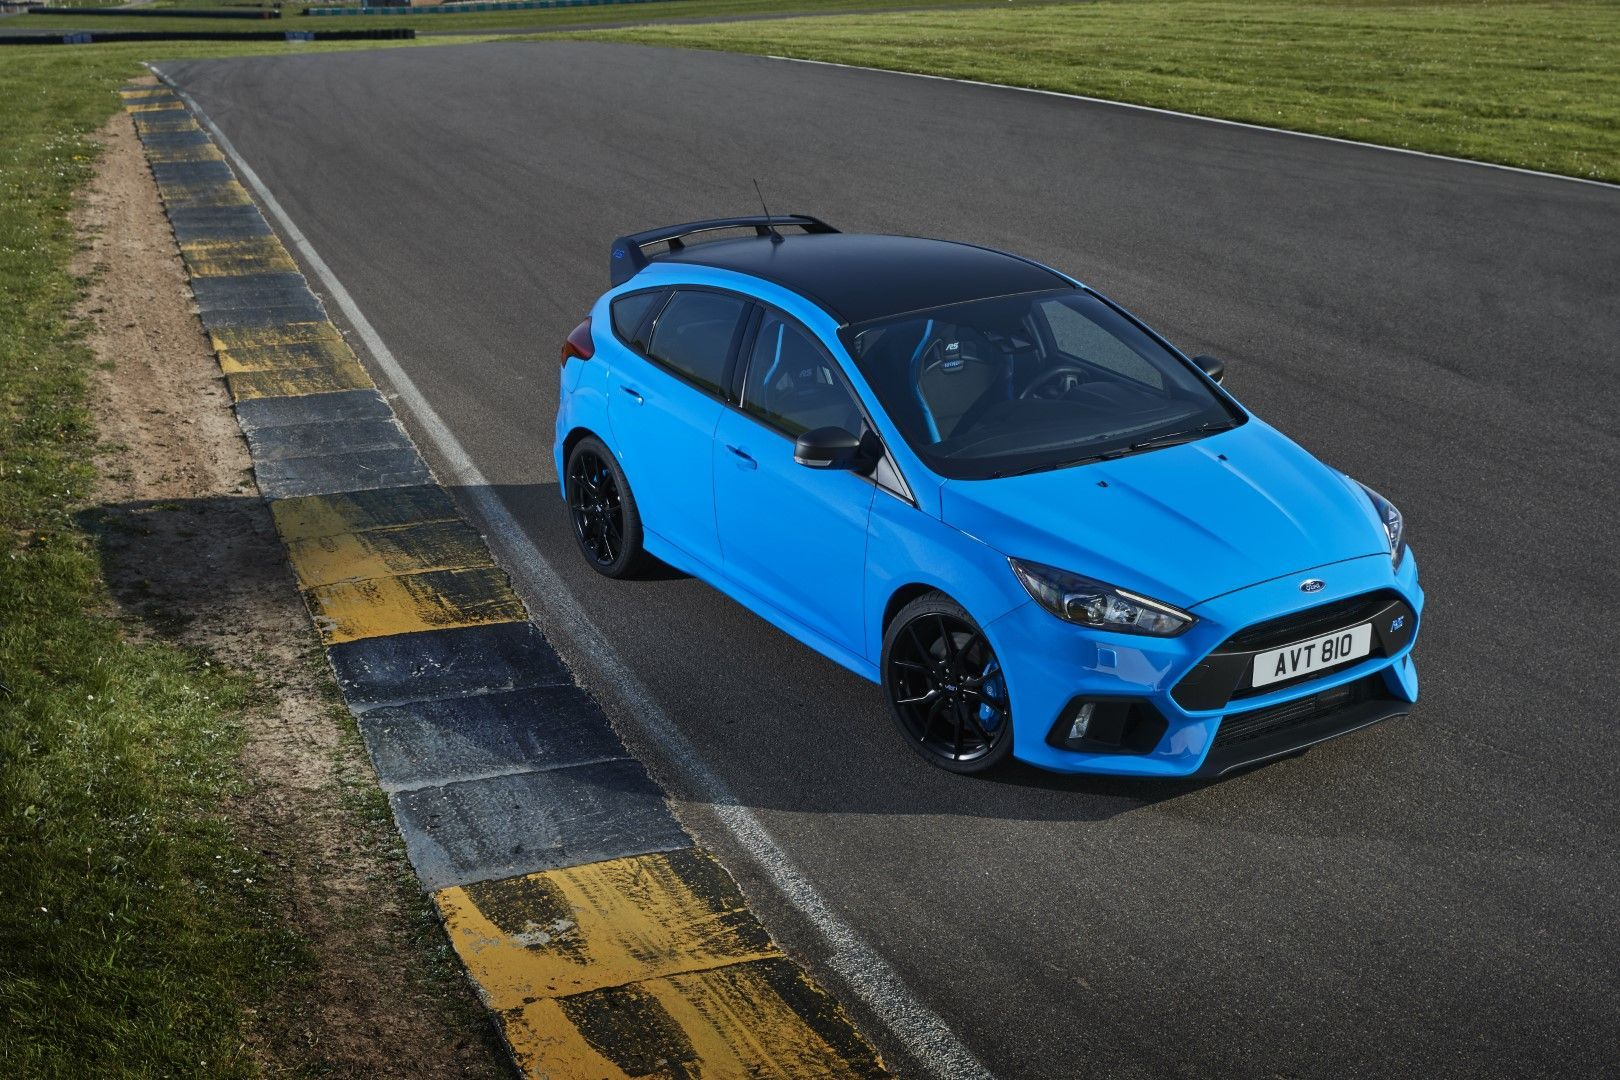 2018 Ford Focus Rs Option Pack Non North American Focus Rs Only Announced 31 May 2017 Ford Focus Rs Focus Rs Ford Focus